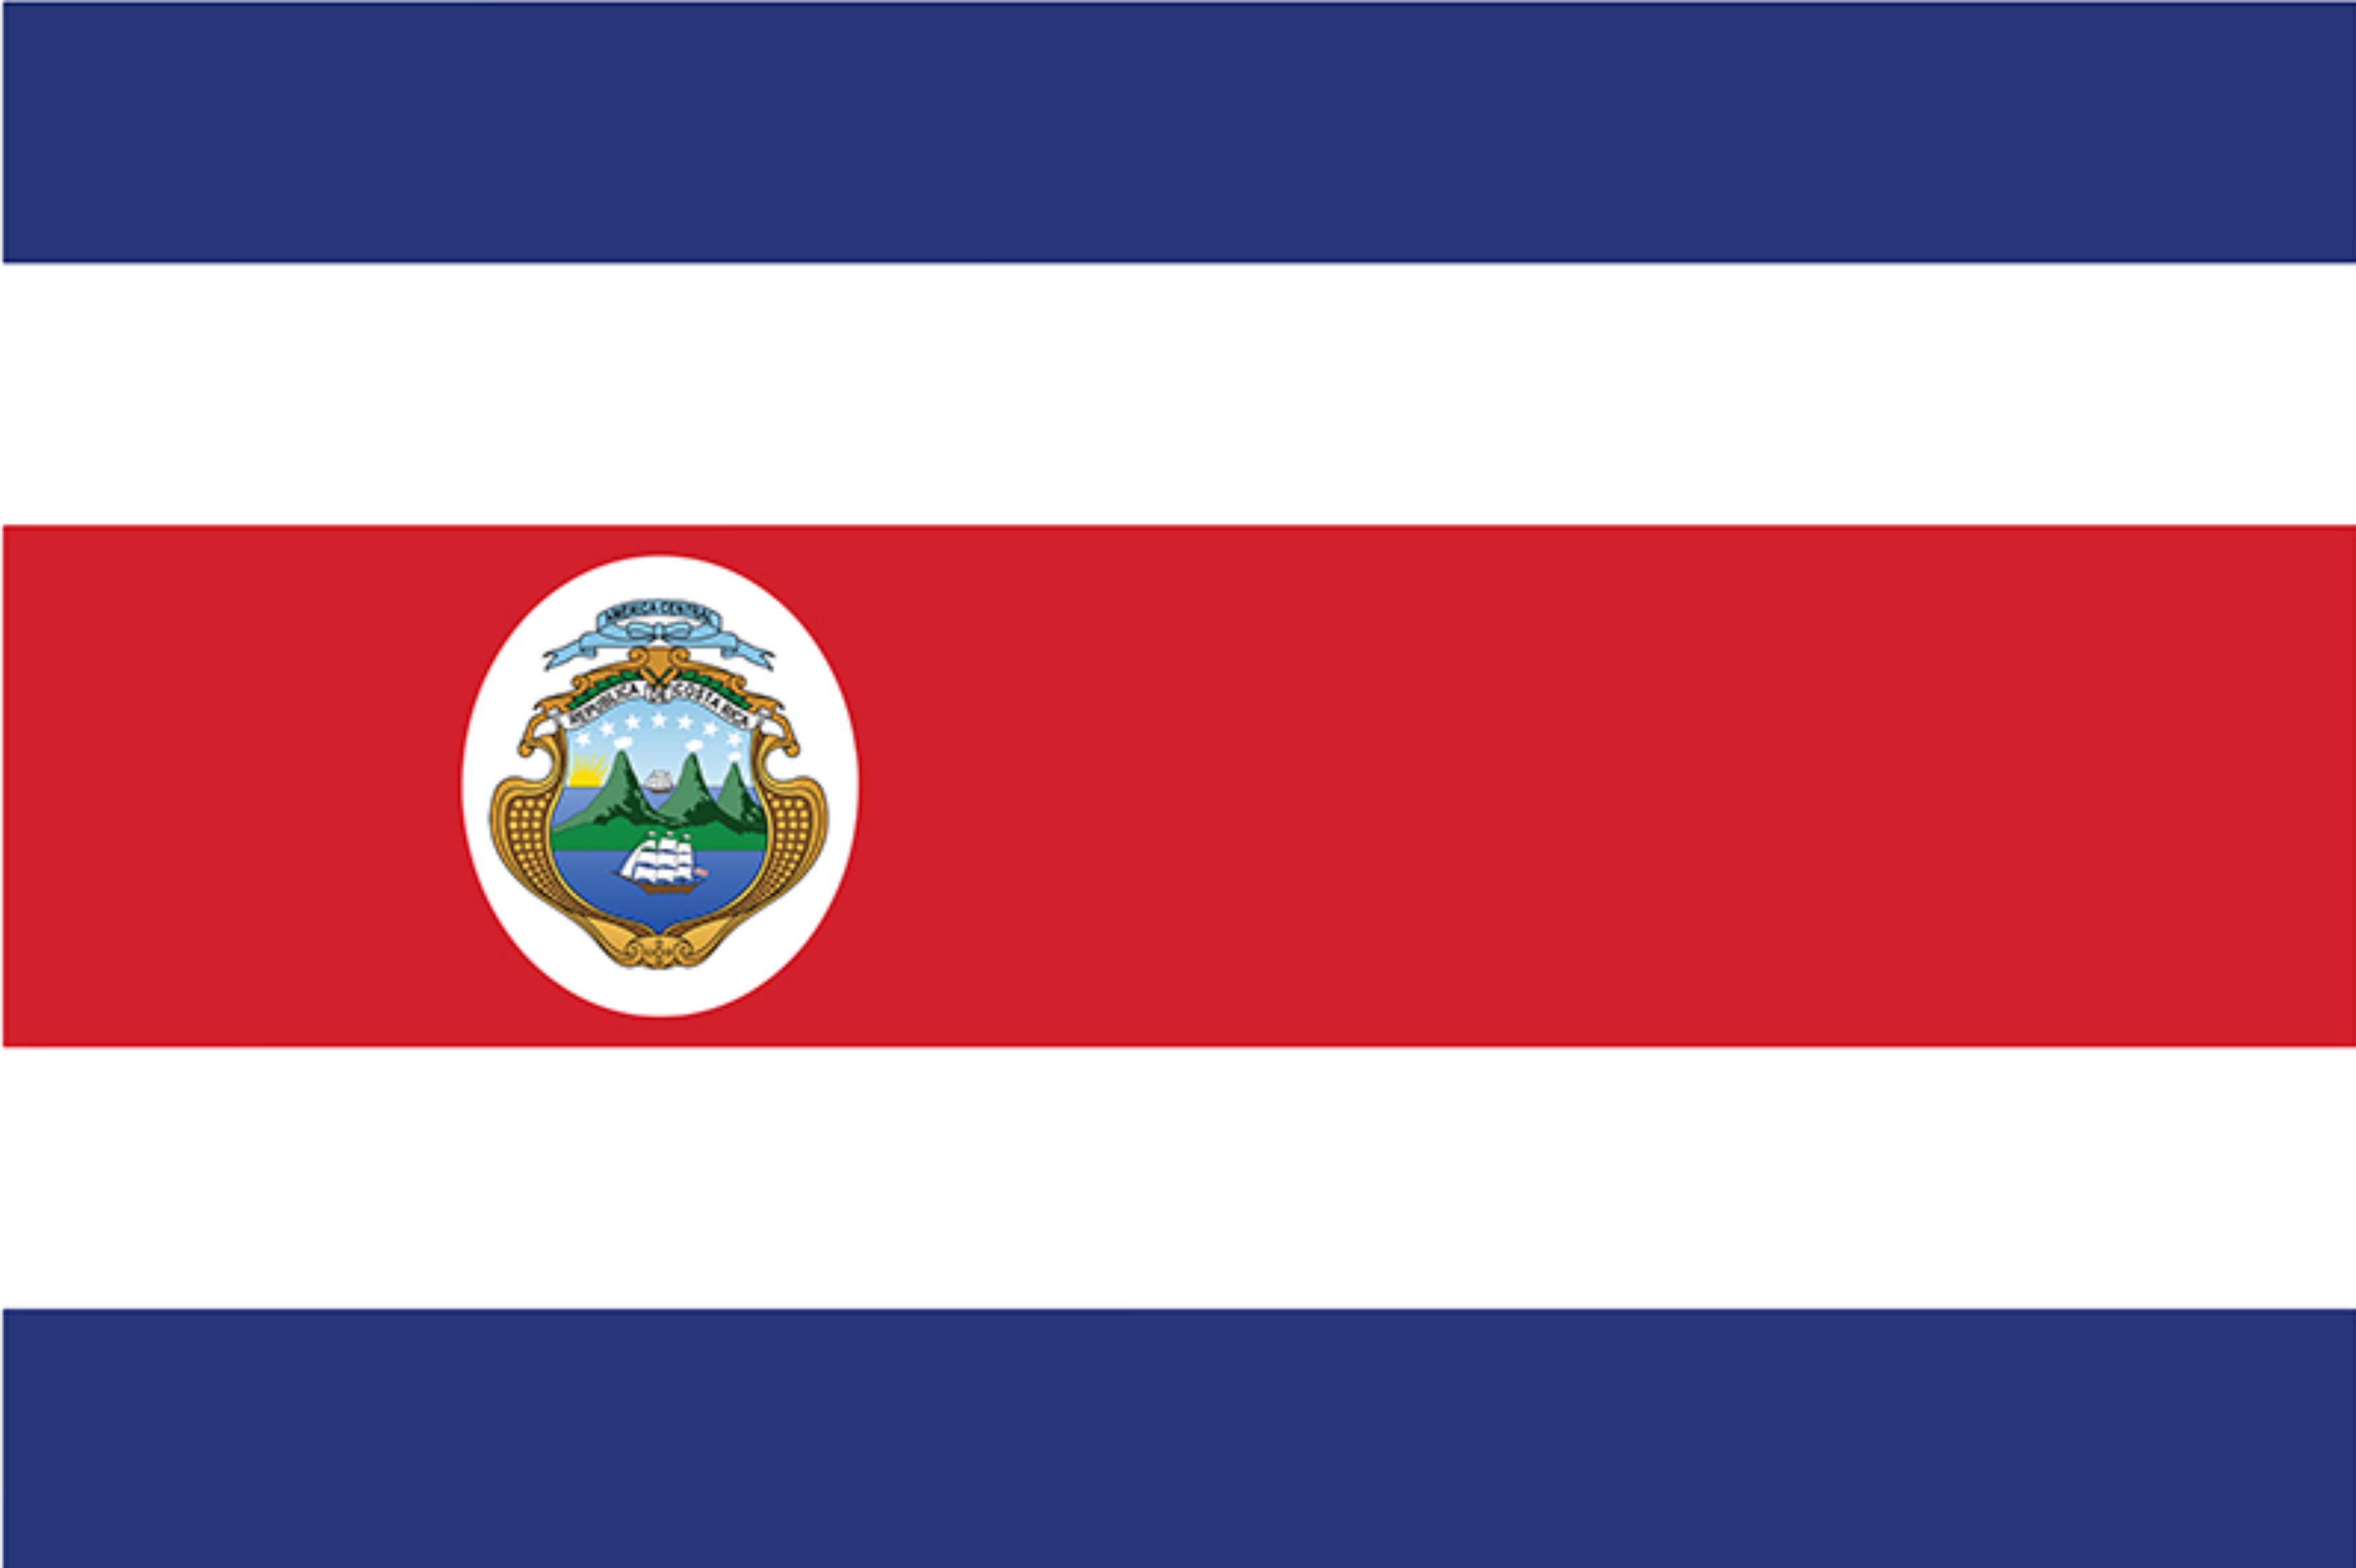 The national flag of Costa Rica.